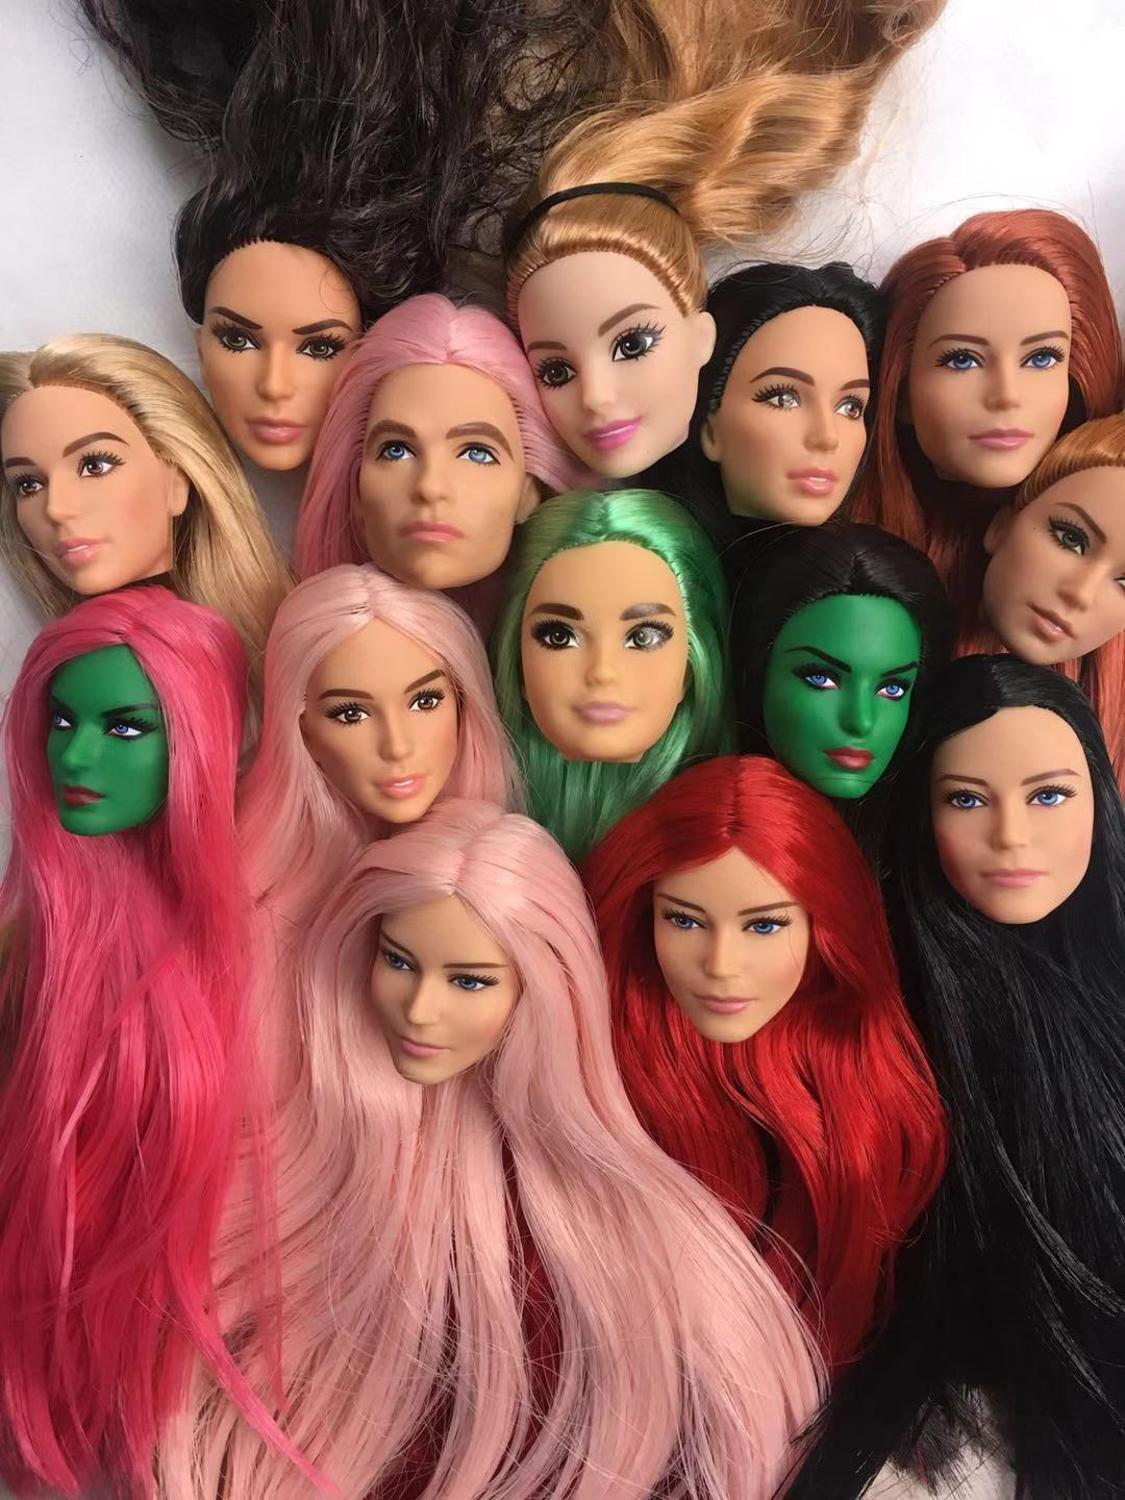 Long Soft Hair Doll Heads Wonder Lady Doll Toy Head Male Female Pink Black Green Red Hair Doll Head Parts Girl Dressing DIY Toy